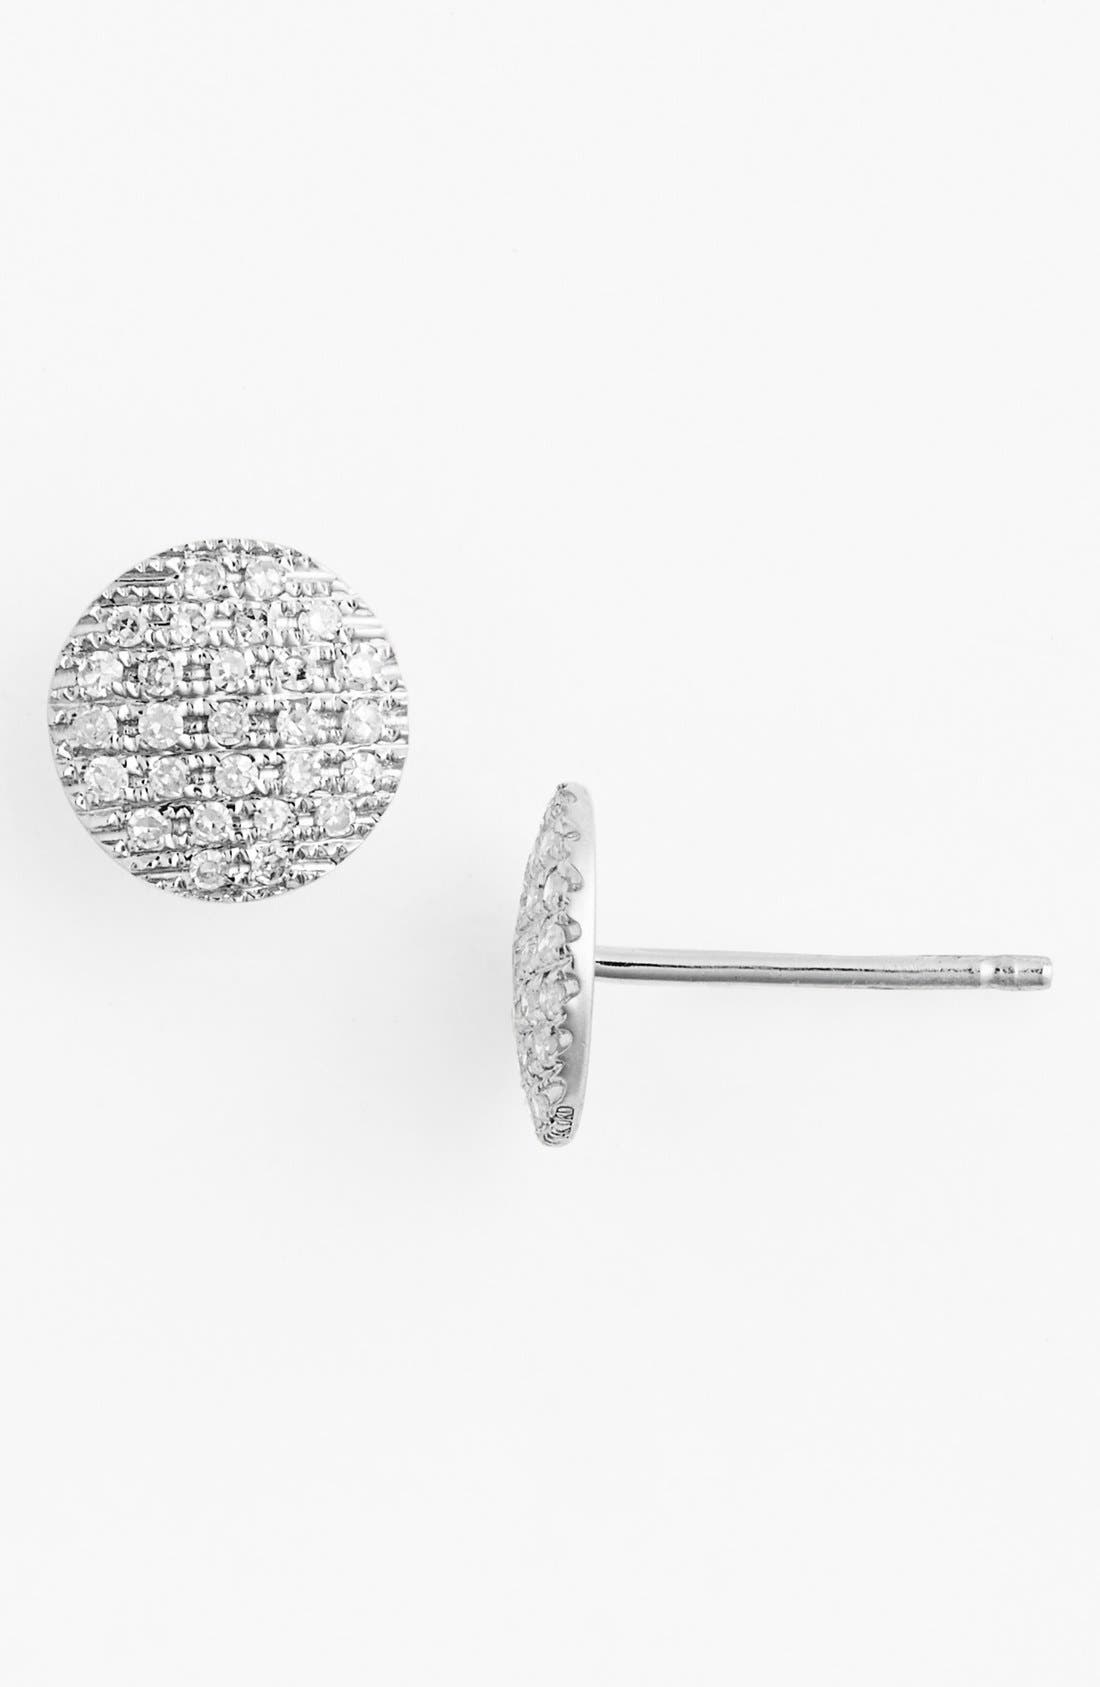 DANA REBECCA DESIGNS, 'Lauren Joy' Diamond Disc Stud Earrings, Main thumbnail 1, color, WHITE GOLD